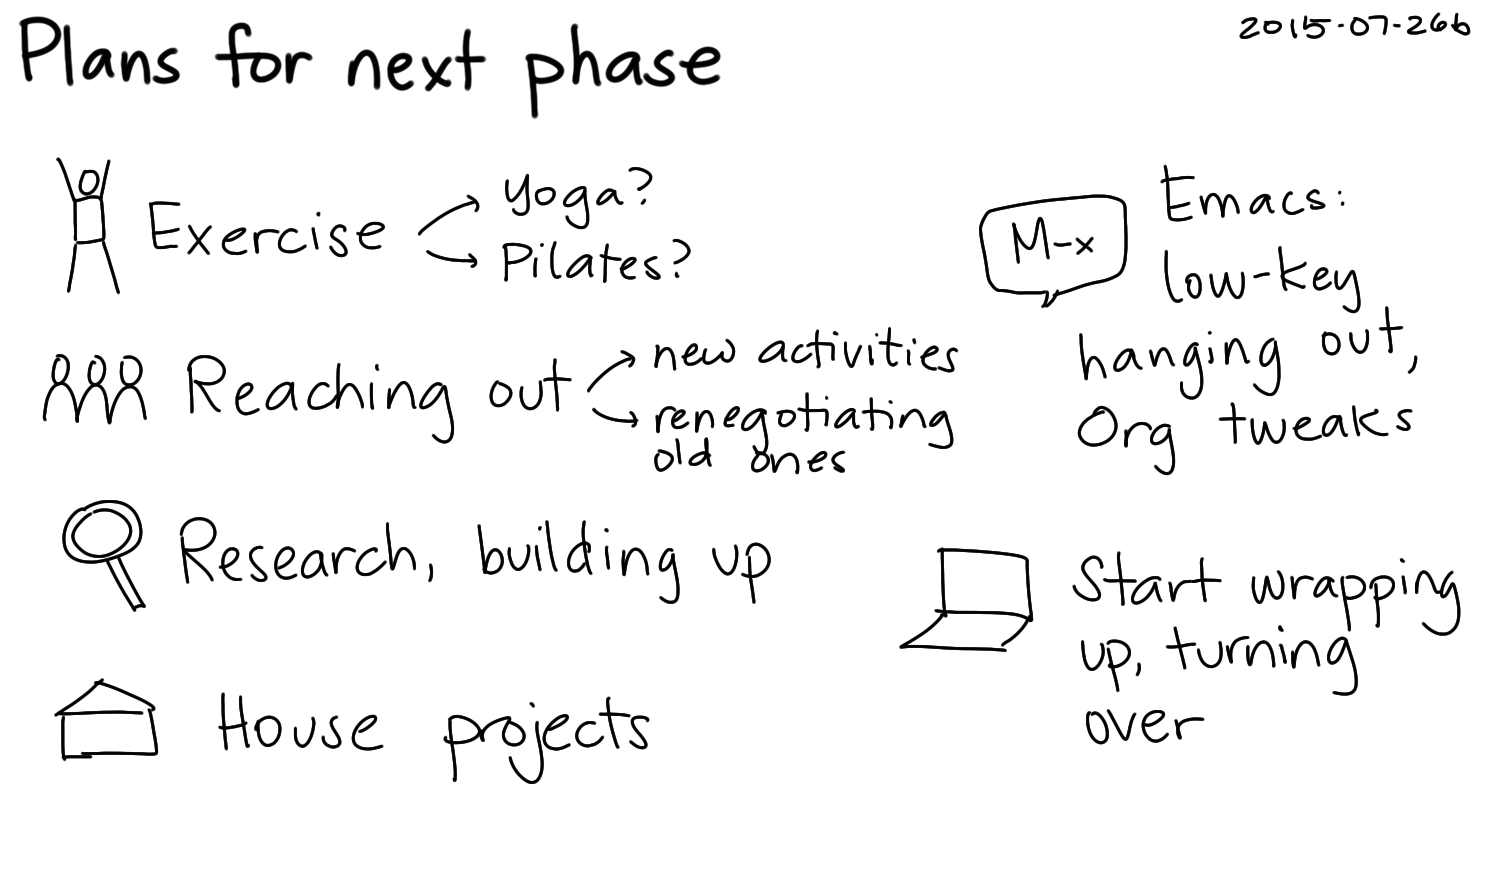 2015-07-26b Plans for next phase -- index card #life #phase #lifecycle.png